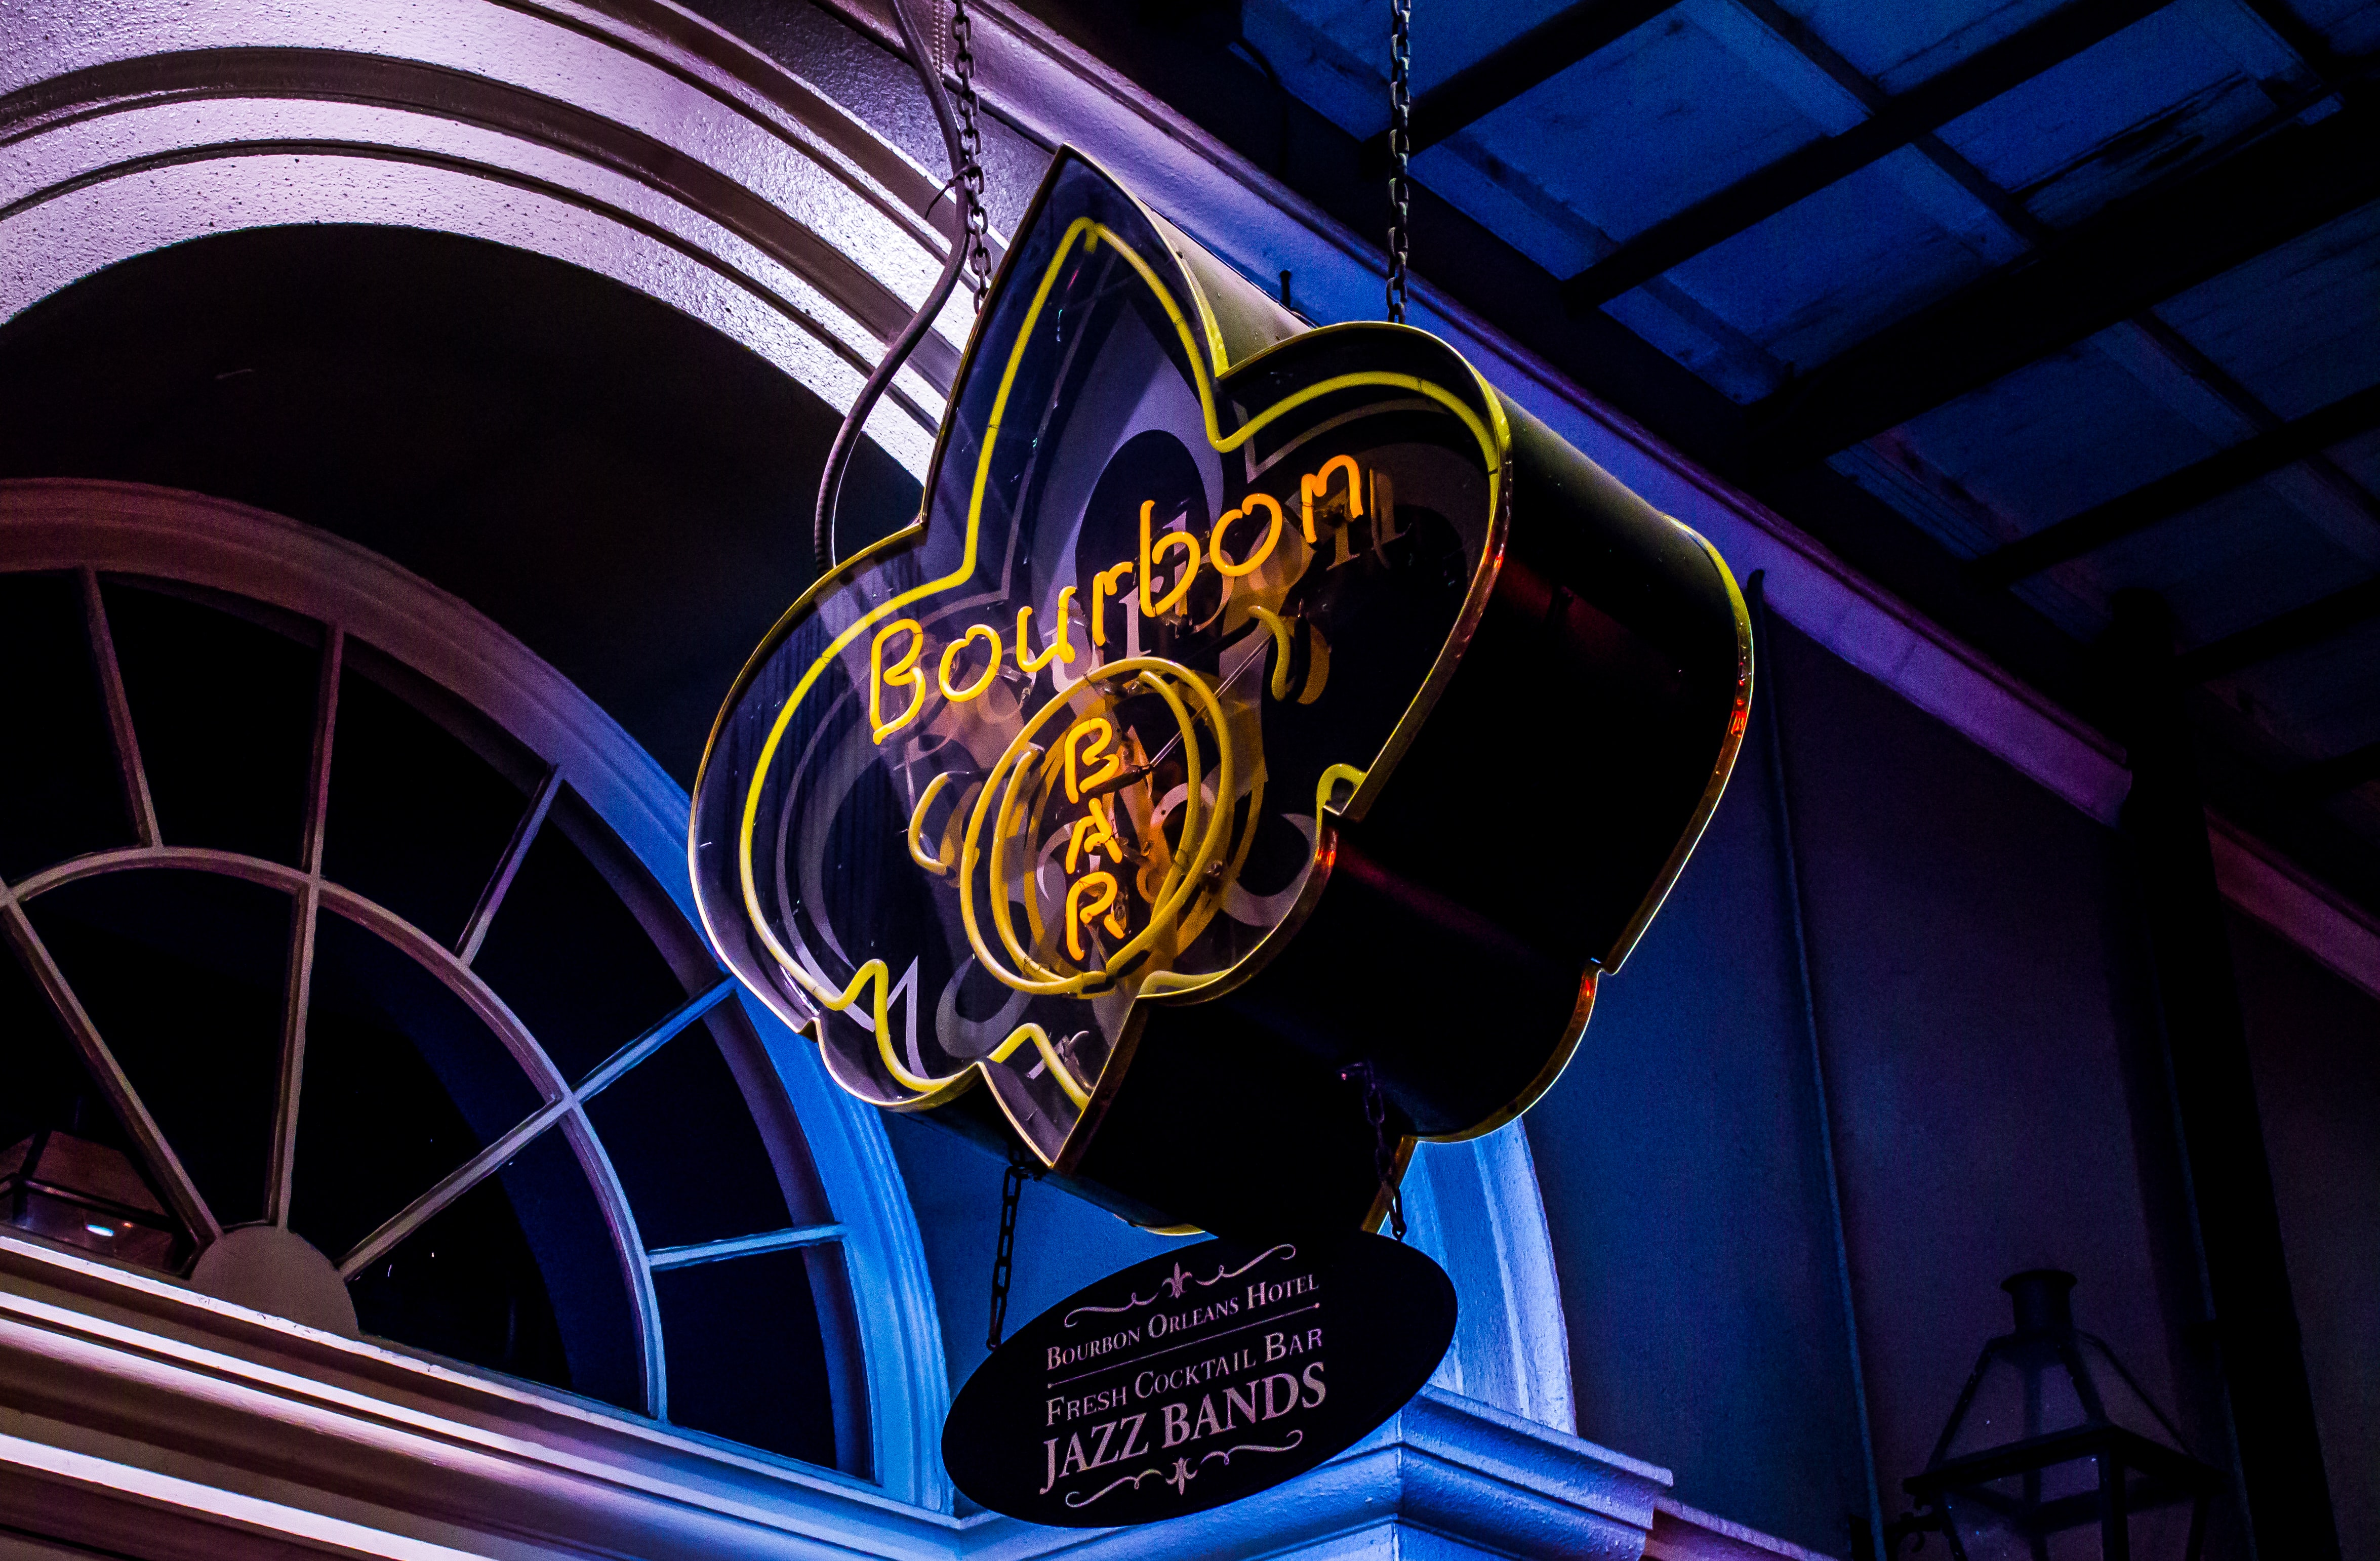 yellow and red Bourbon Jazz Bands signage